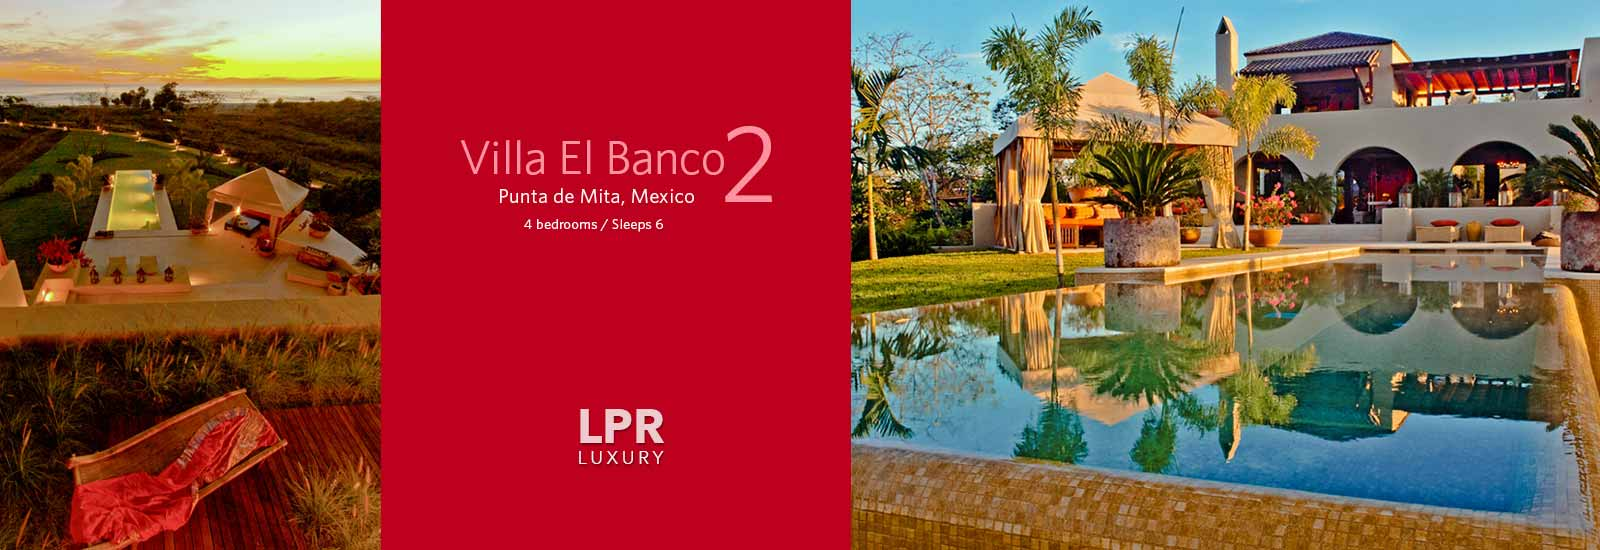 Villa El Banco 2 - Luxury Punta Mita Rentals and Real Estate - Vallarta | Nayarit, Mexico